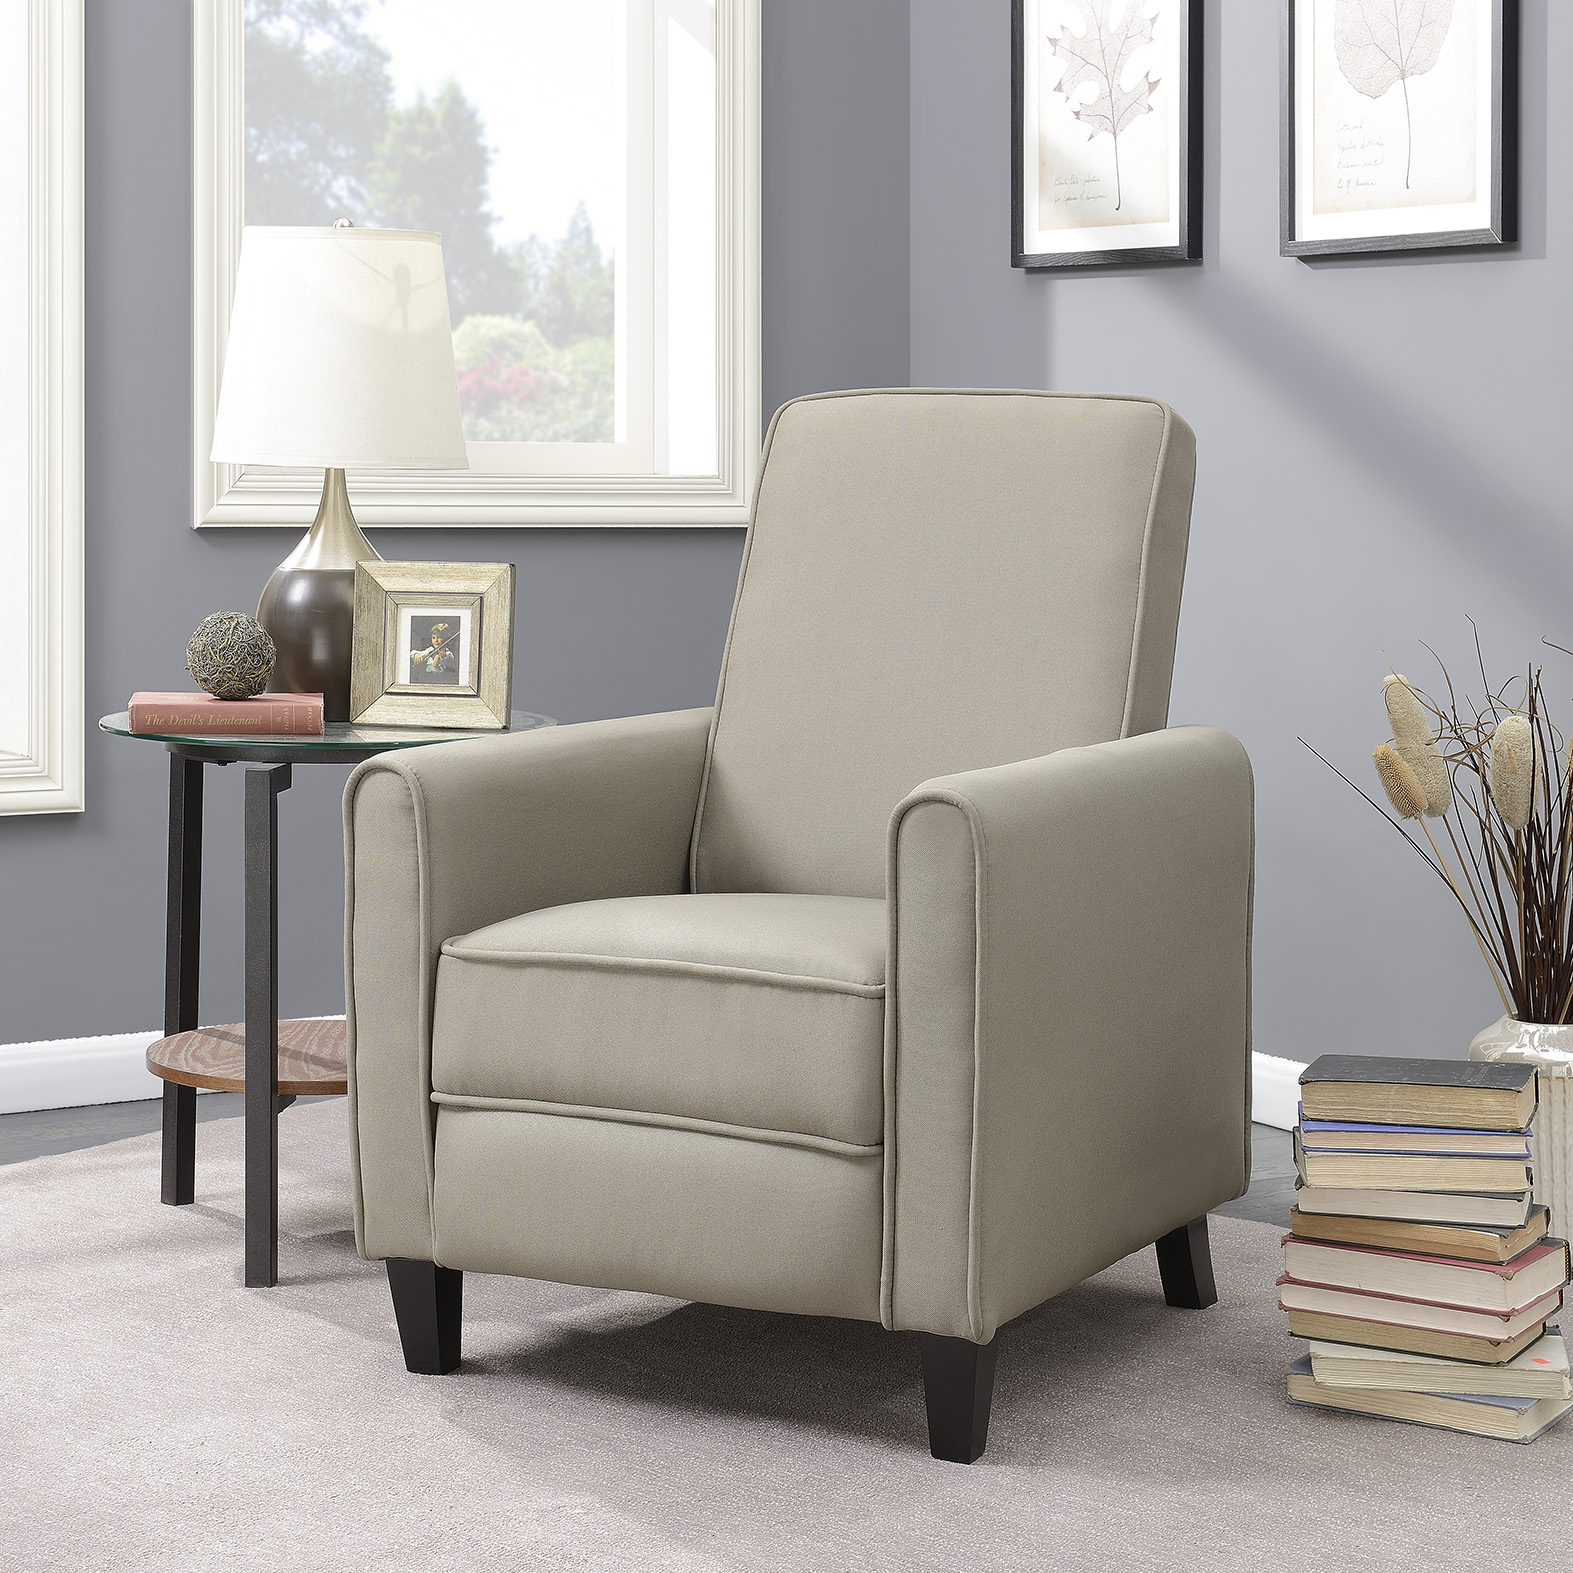 Details About Recliner Club Chair Living Room Home Modern Design Recline Fabric Gray Beige